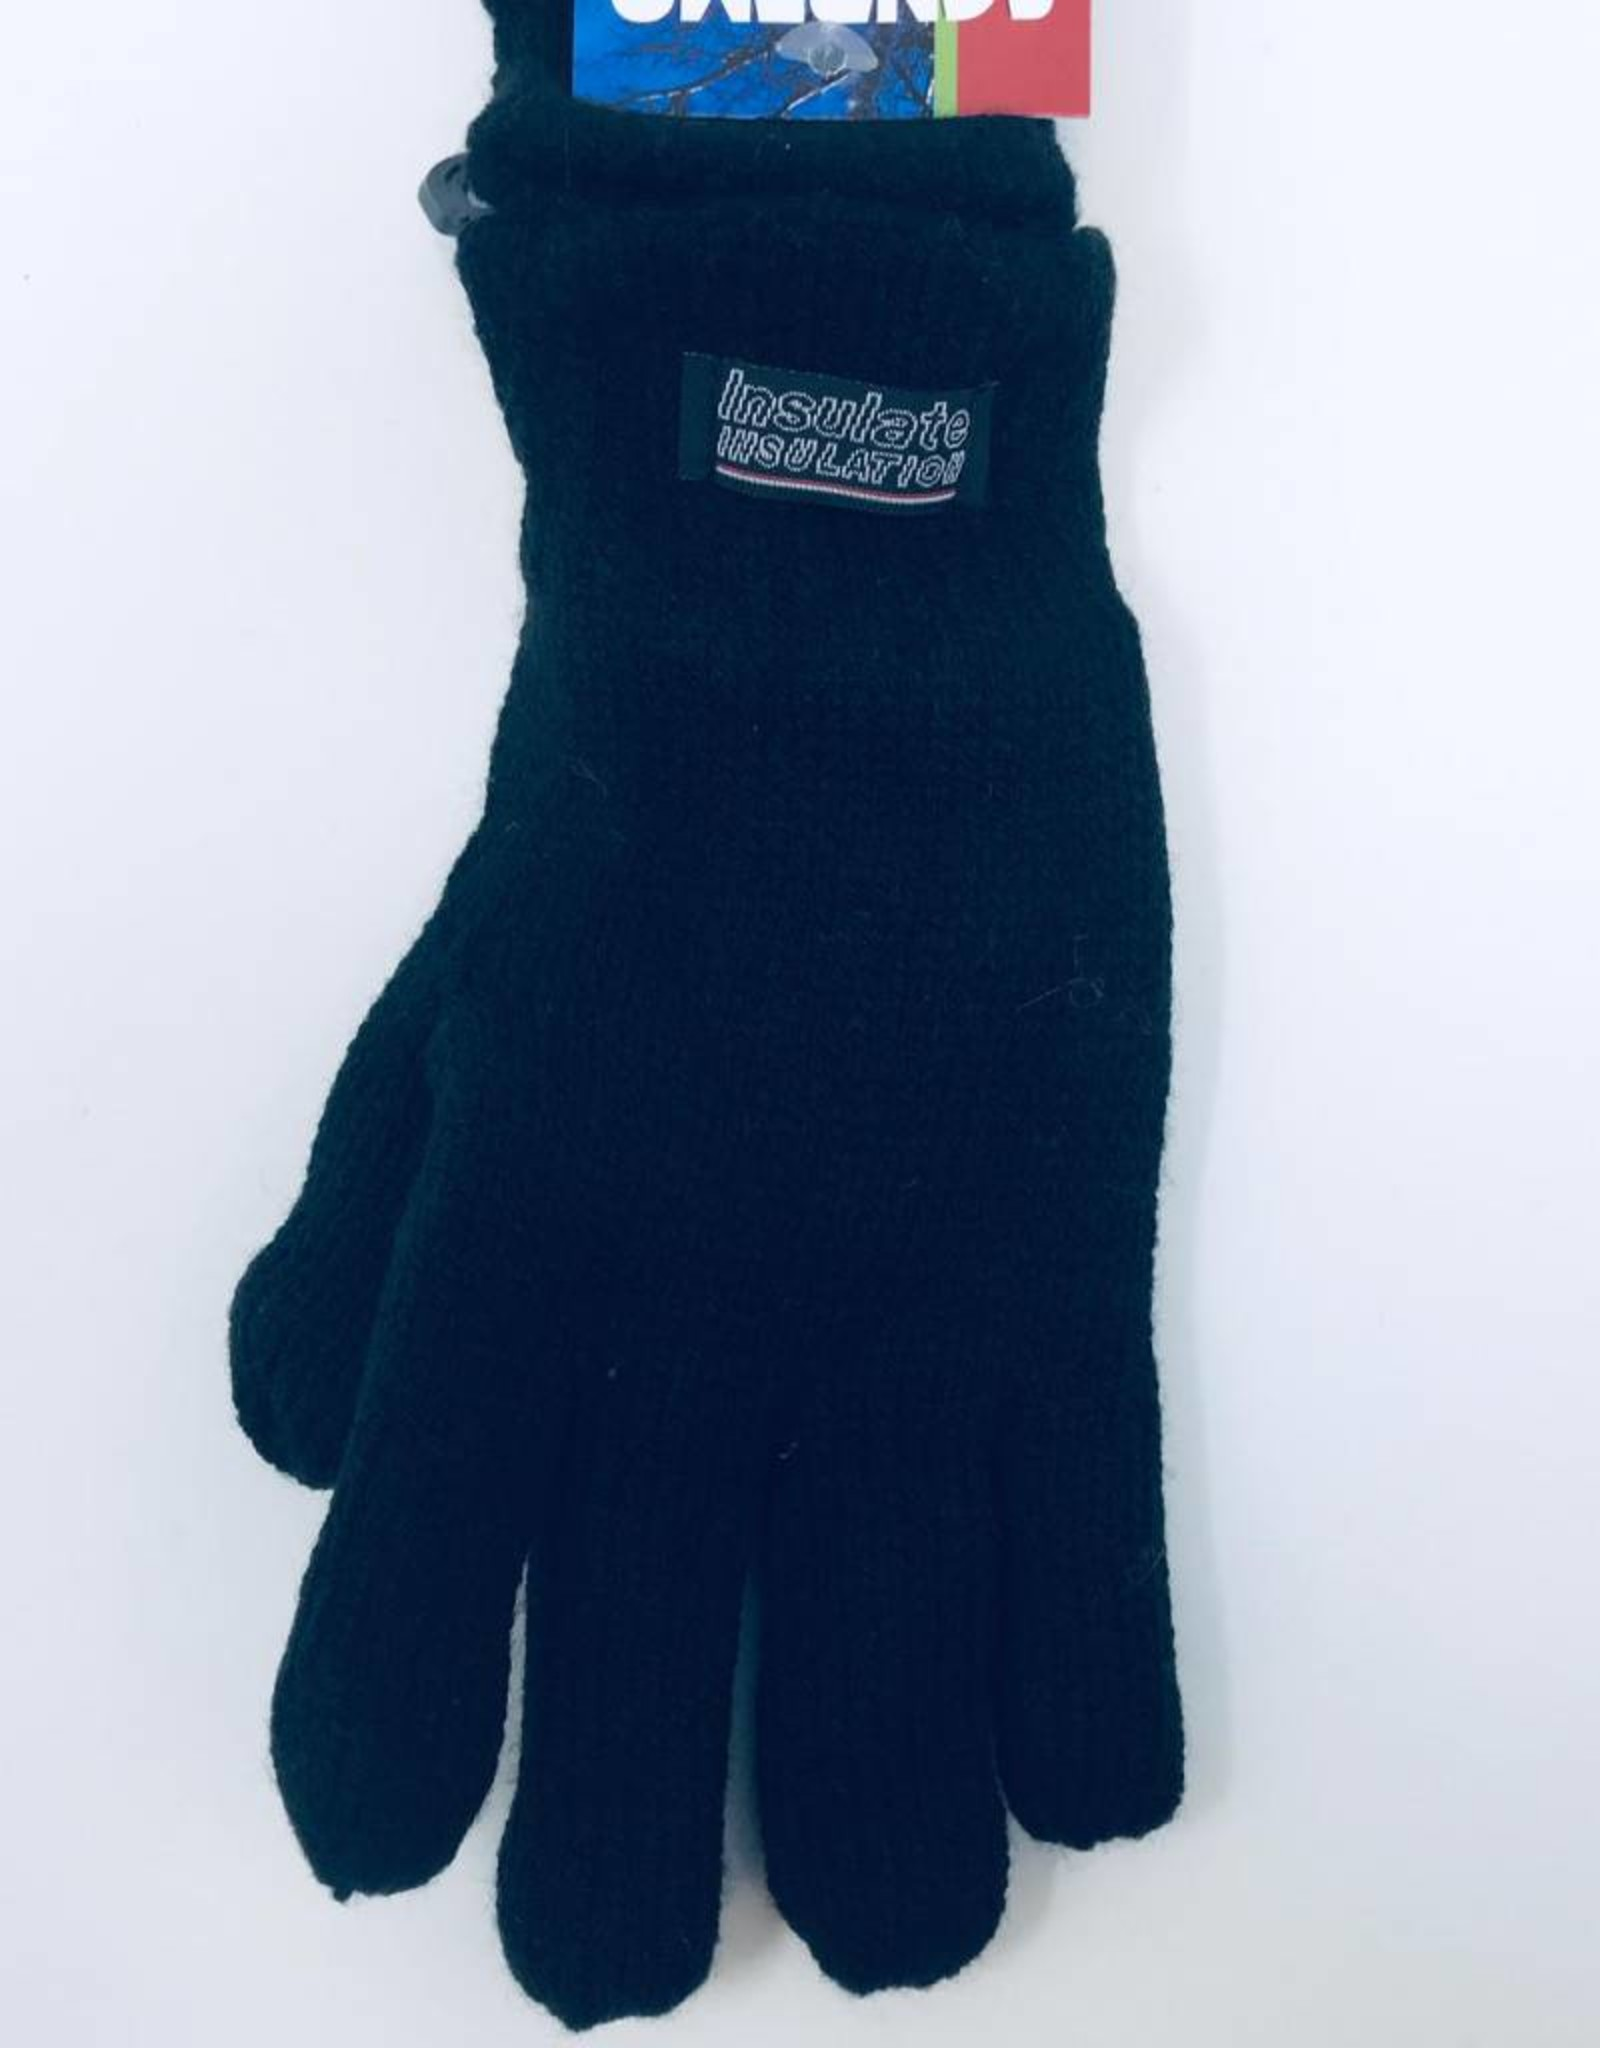 Sanremo Sanremo Thinsulate Gloves